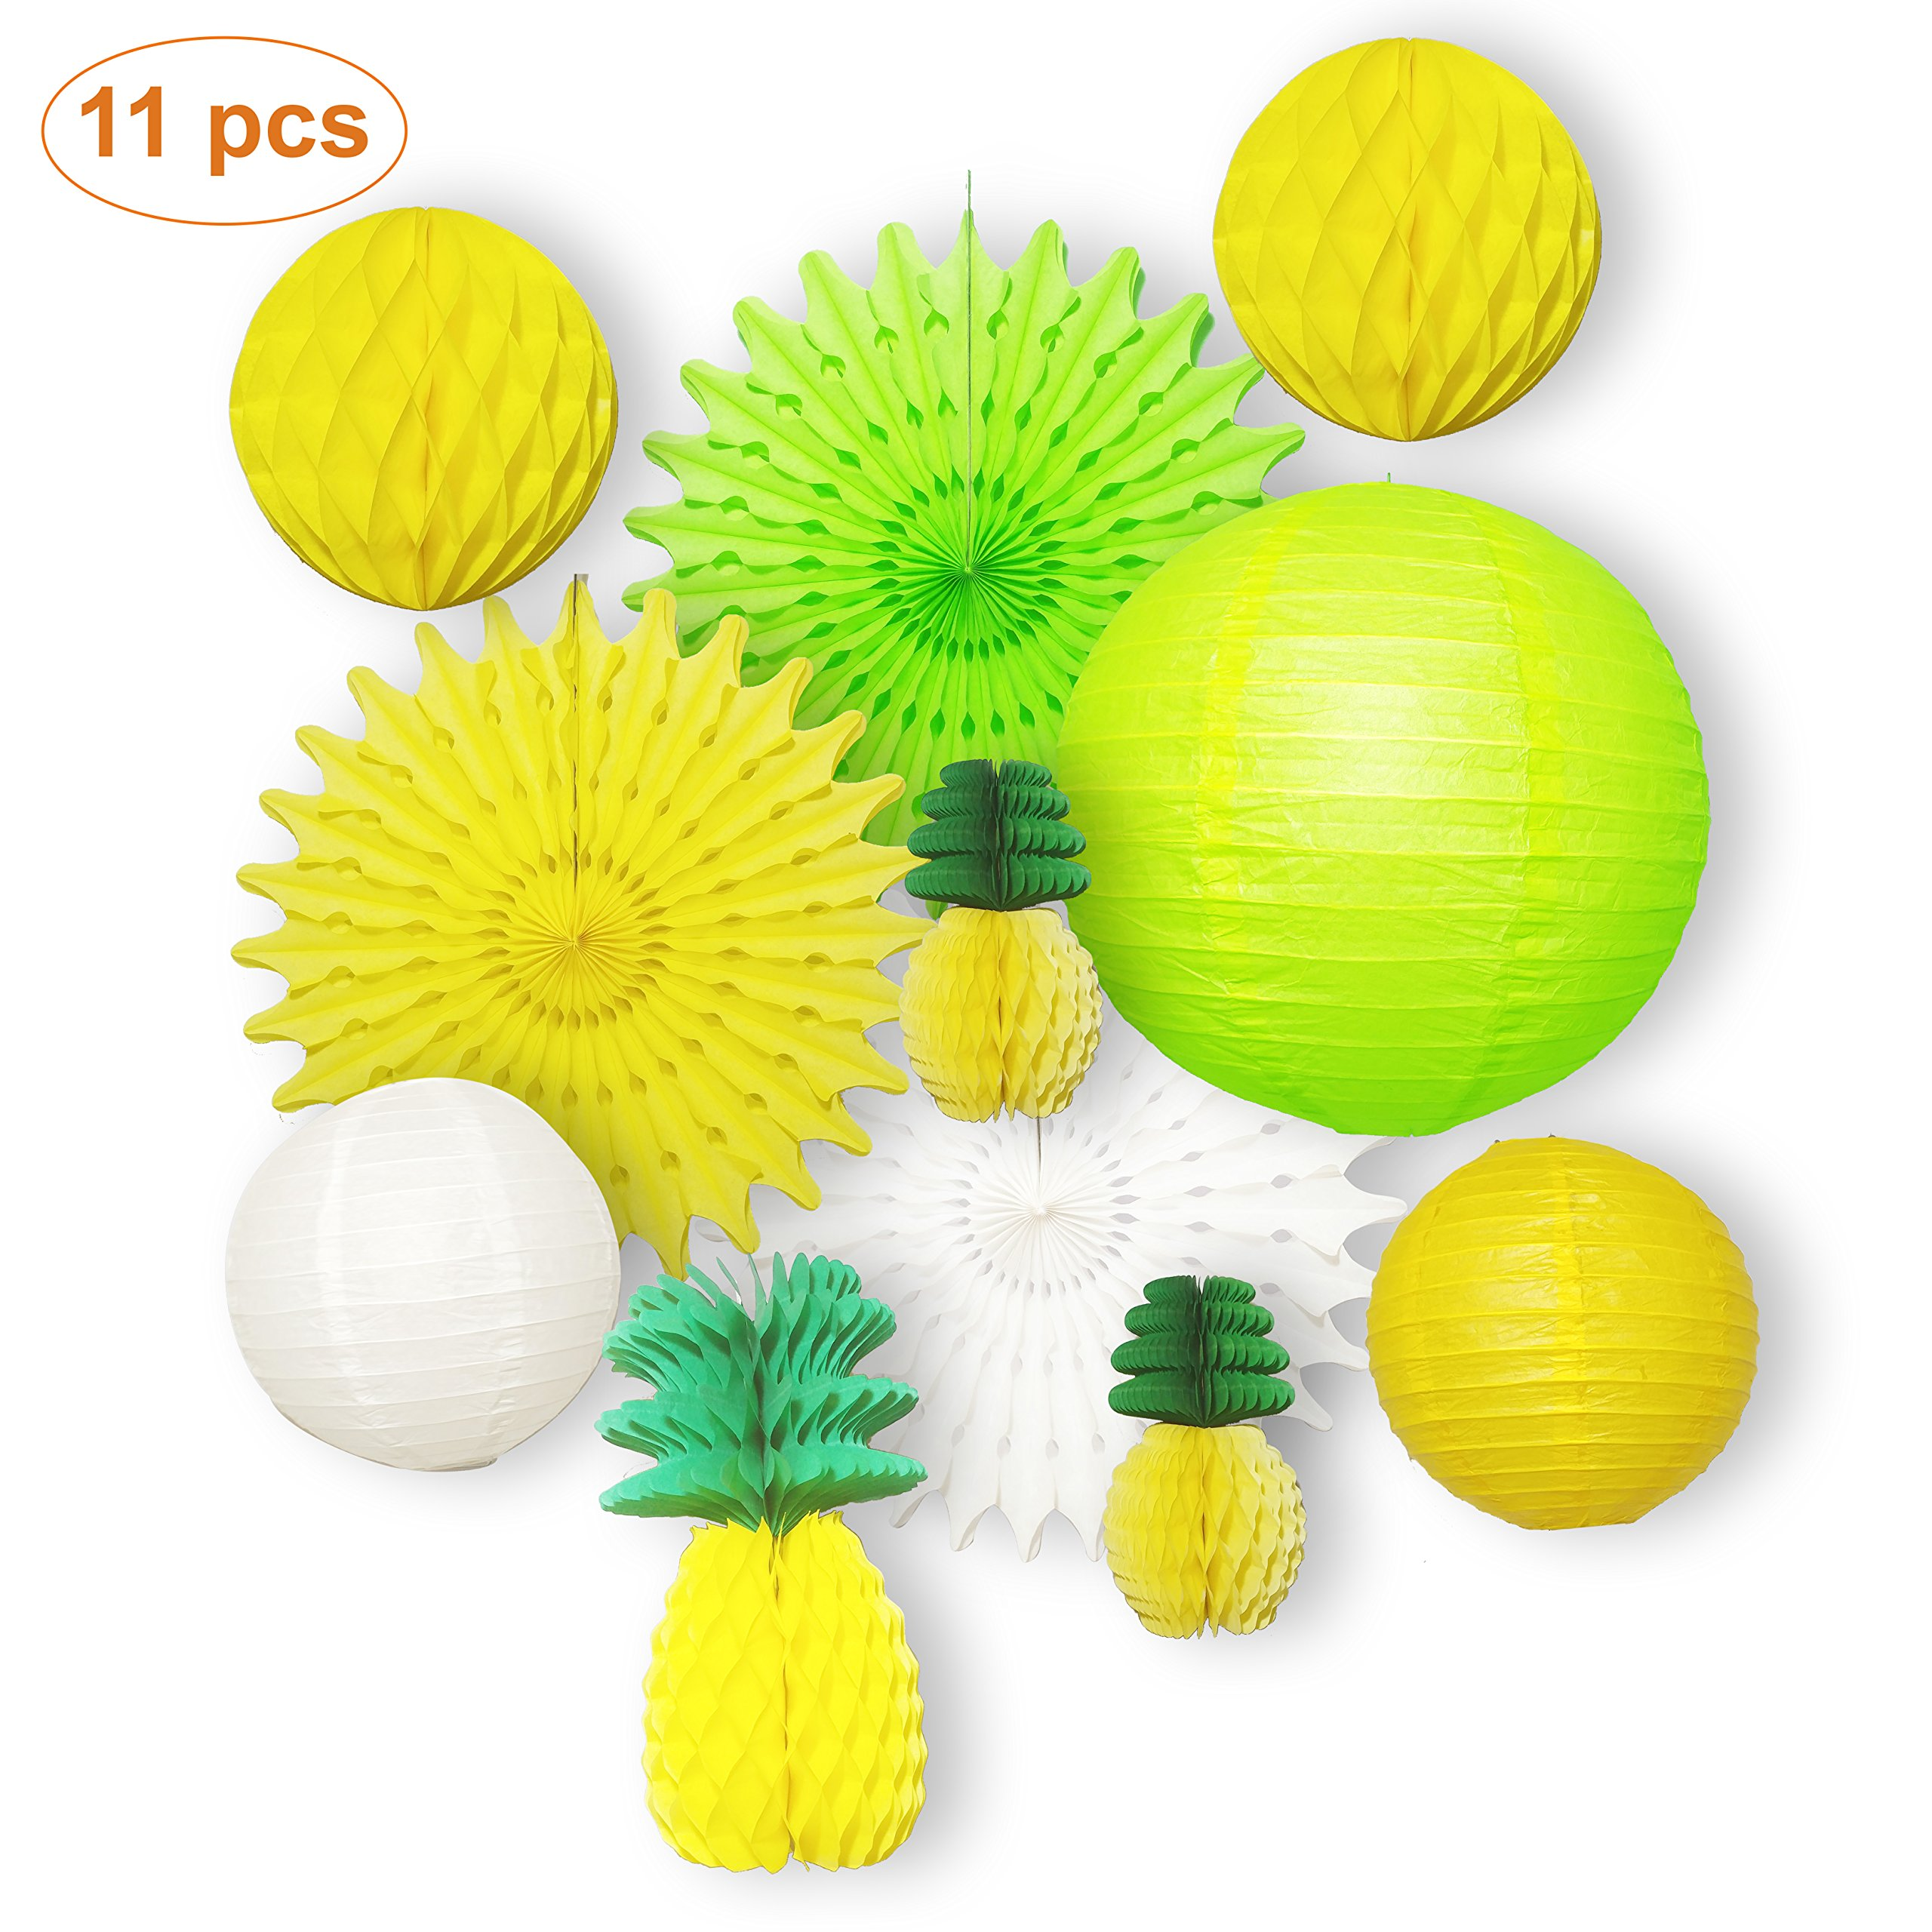 11 pcs Summer Party Honeycomb Pineapple Ball For Tropical Hawaiian Luau Party Festival Paper Lantern Paper Fan Decoration by ColdSheep Party Supplies